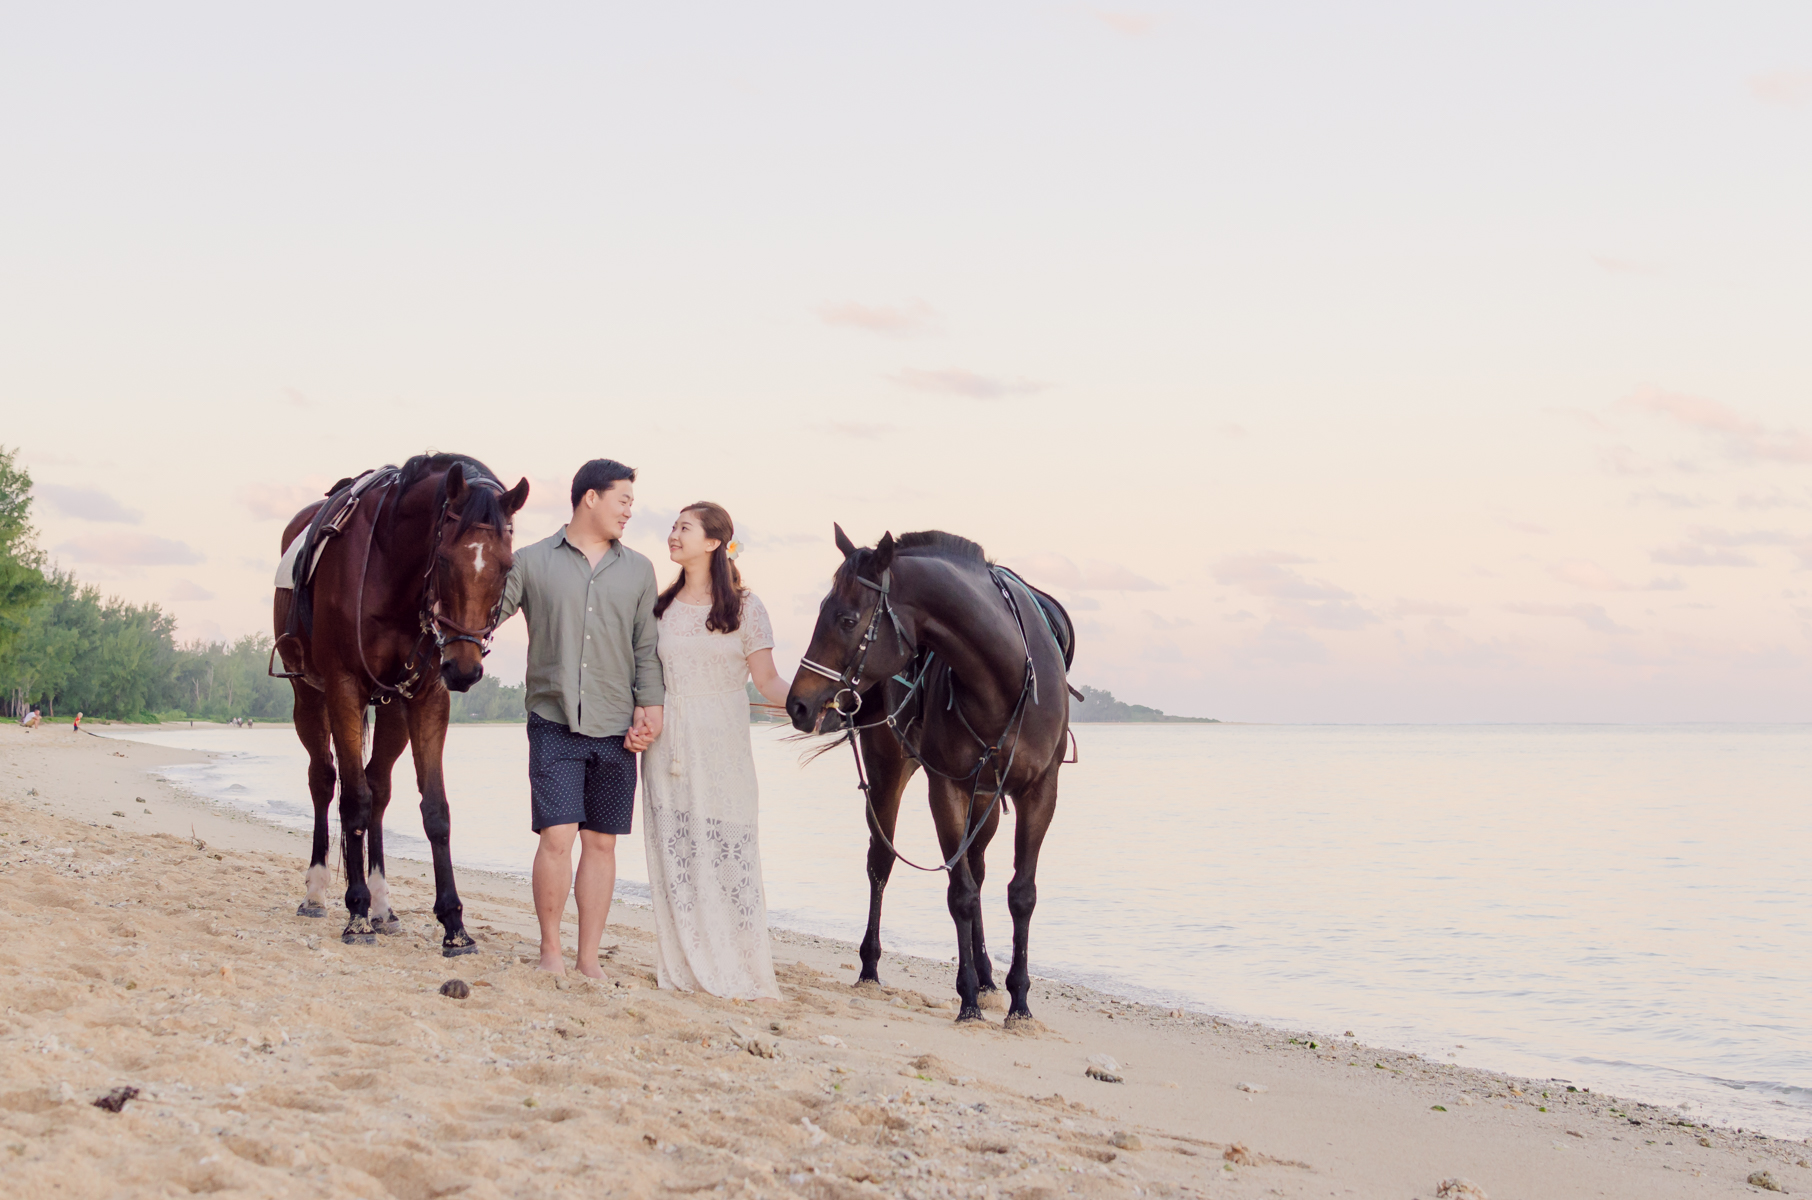 horses on the beach in Mauritius